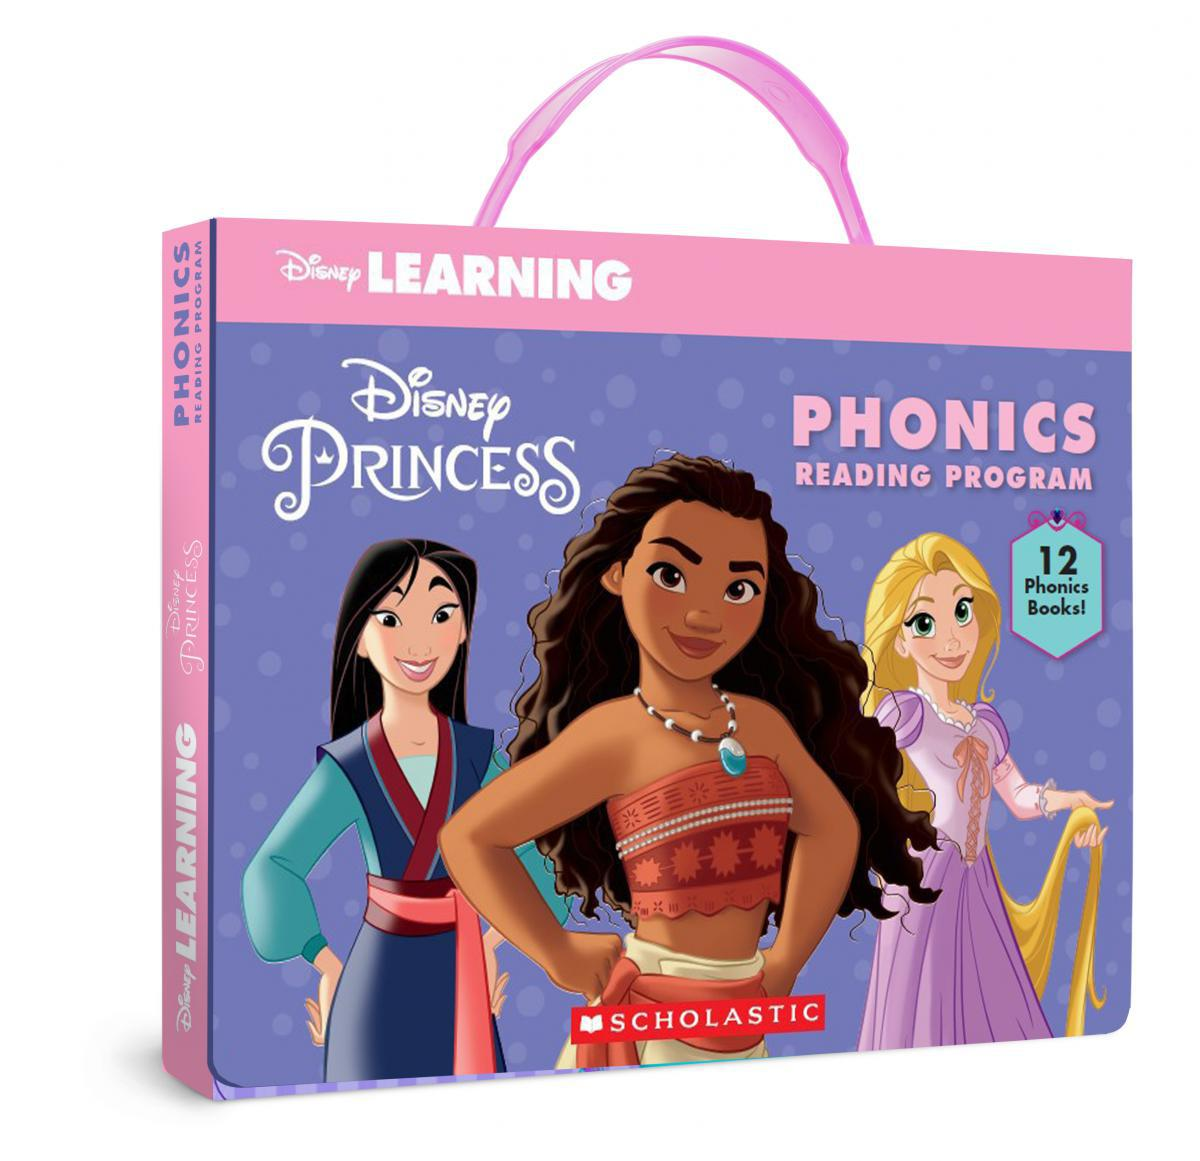 Disney Learning: Disney Princess Phonics Boxed Set